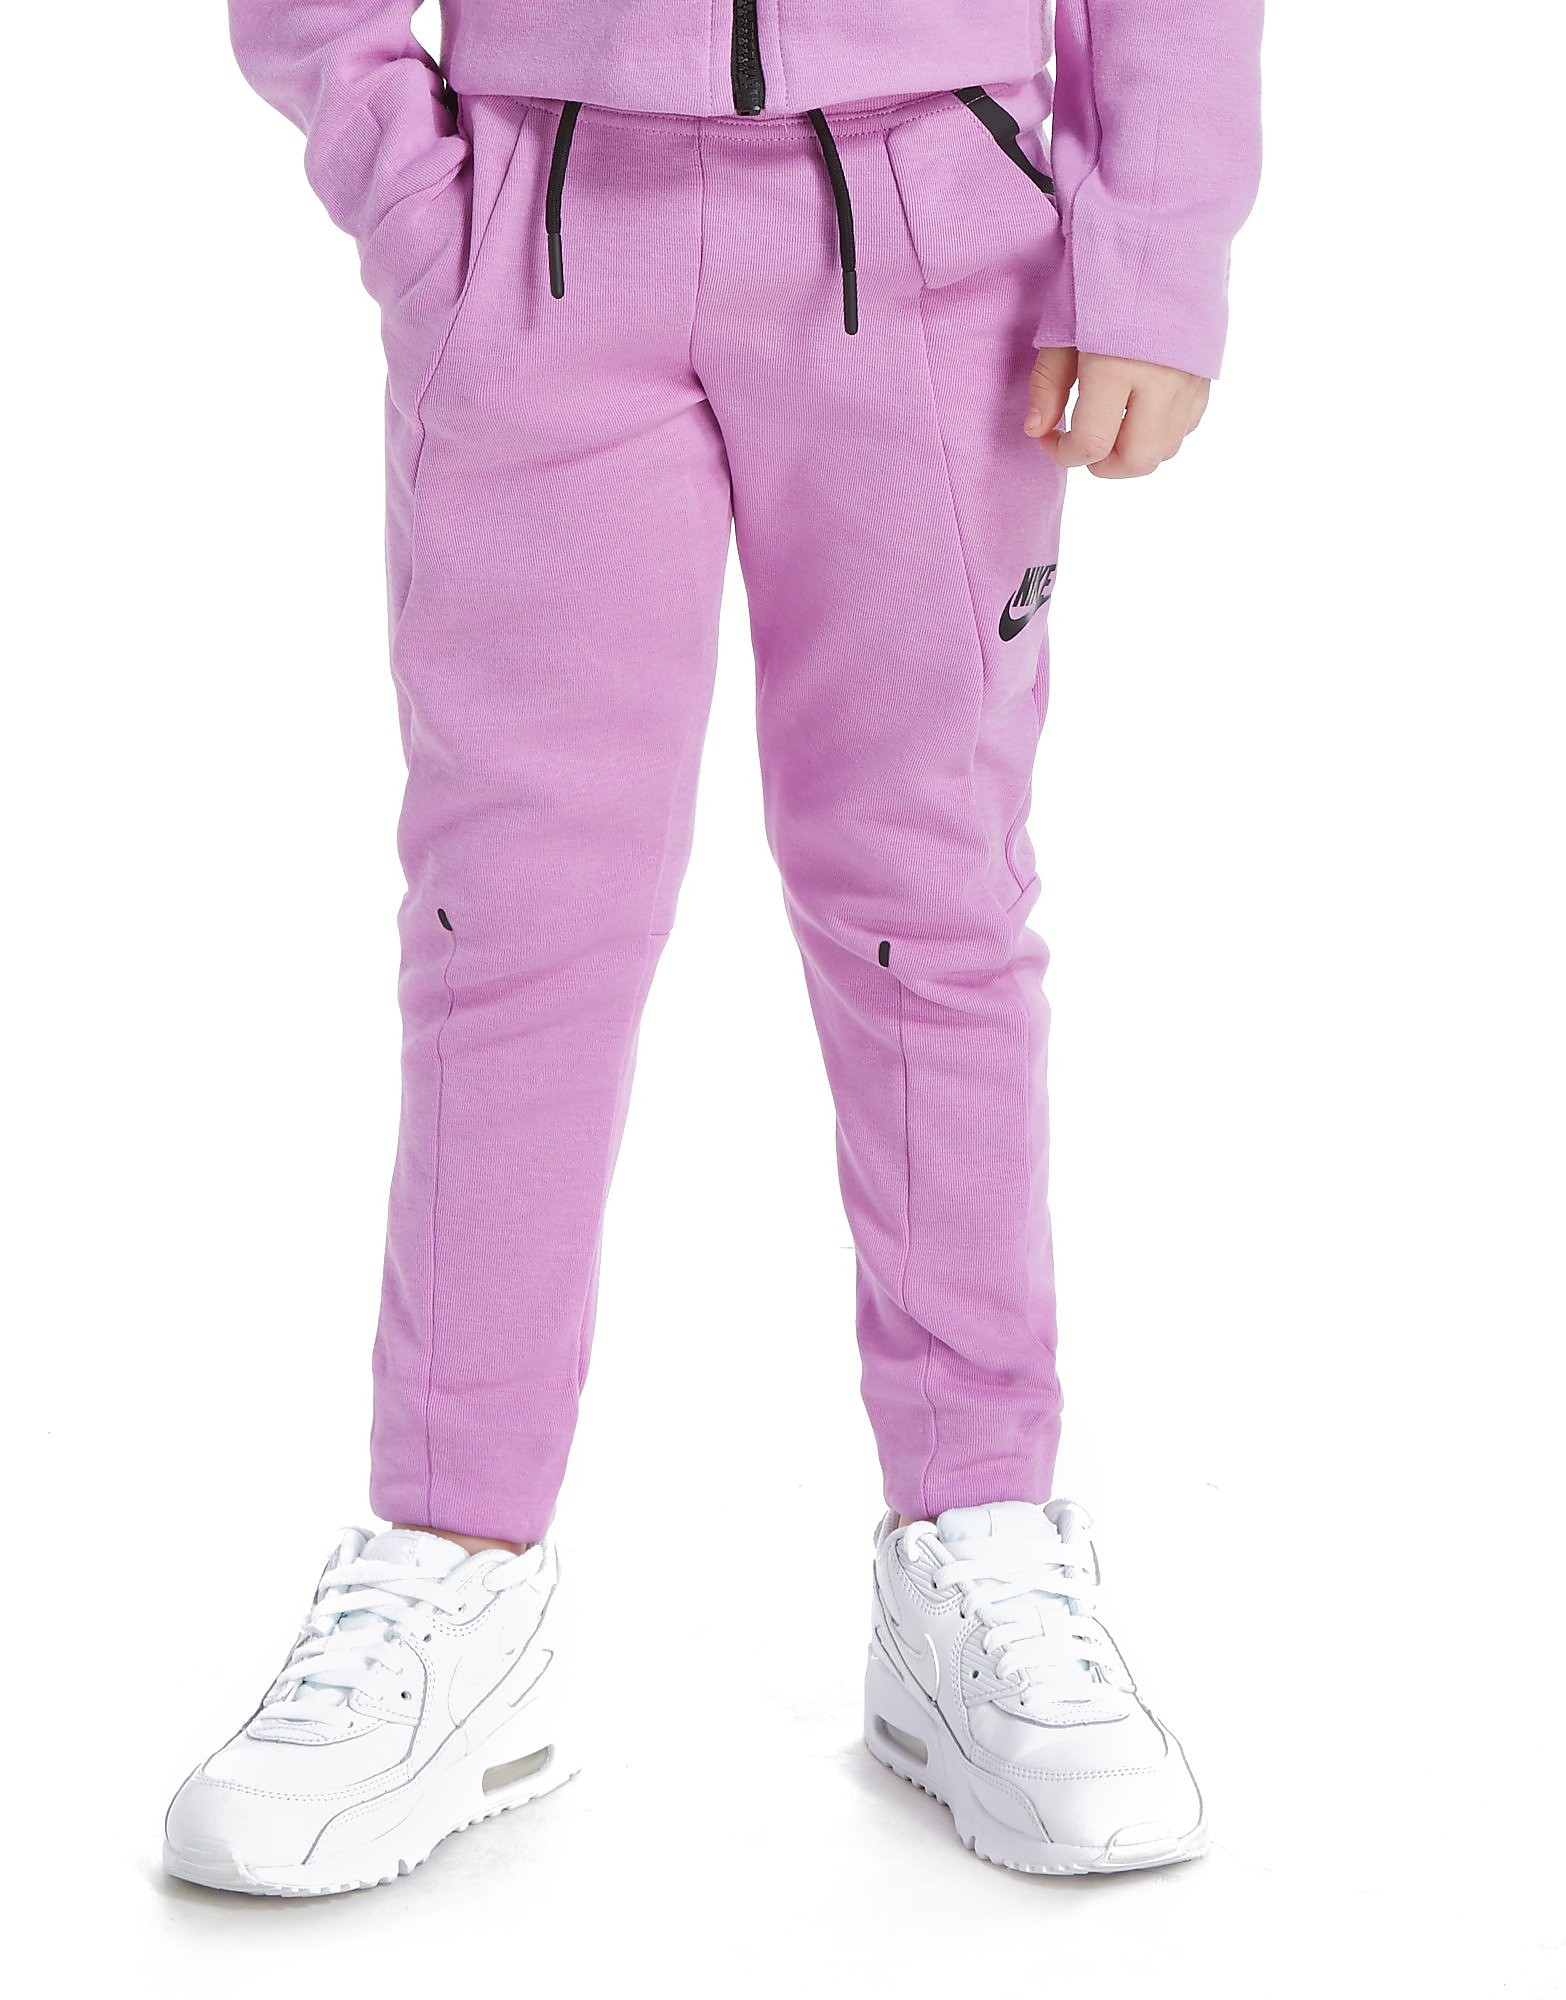 Nike Girls' Tech Fleece Pants Children